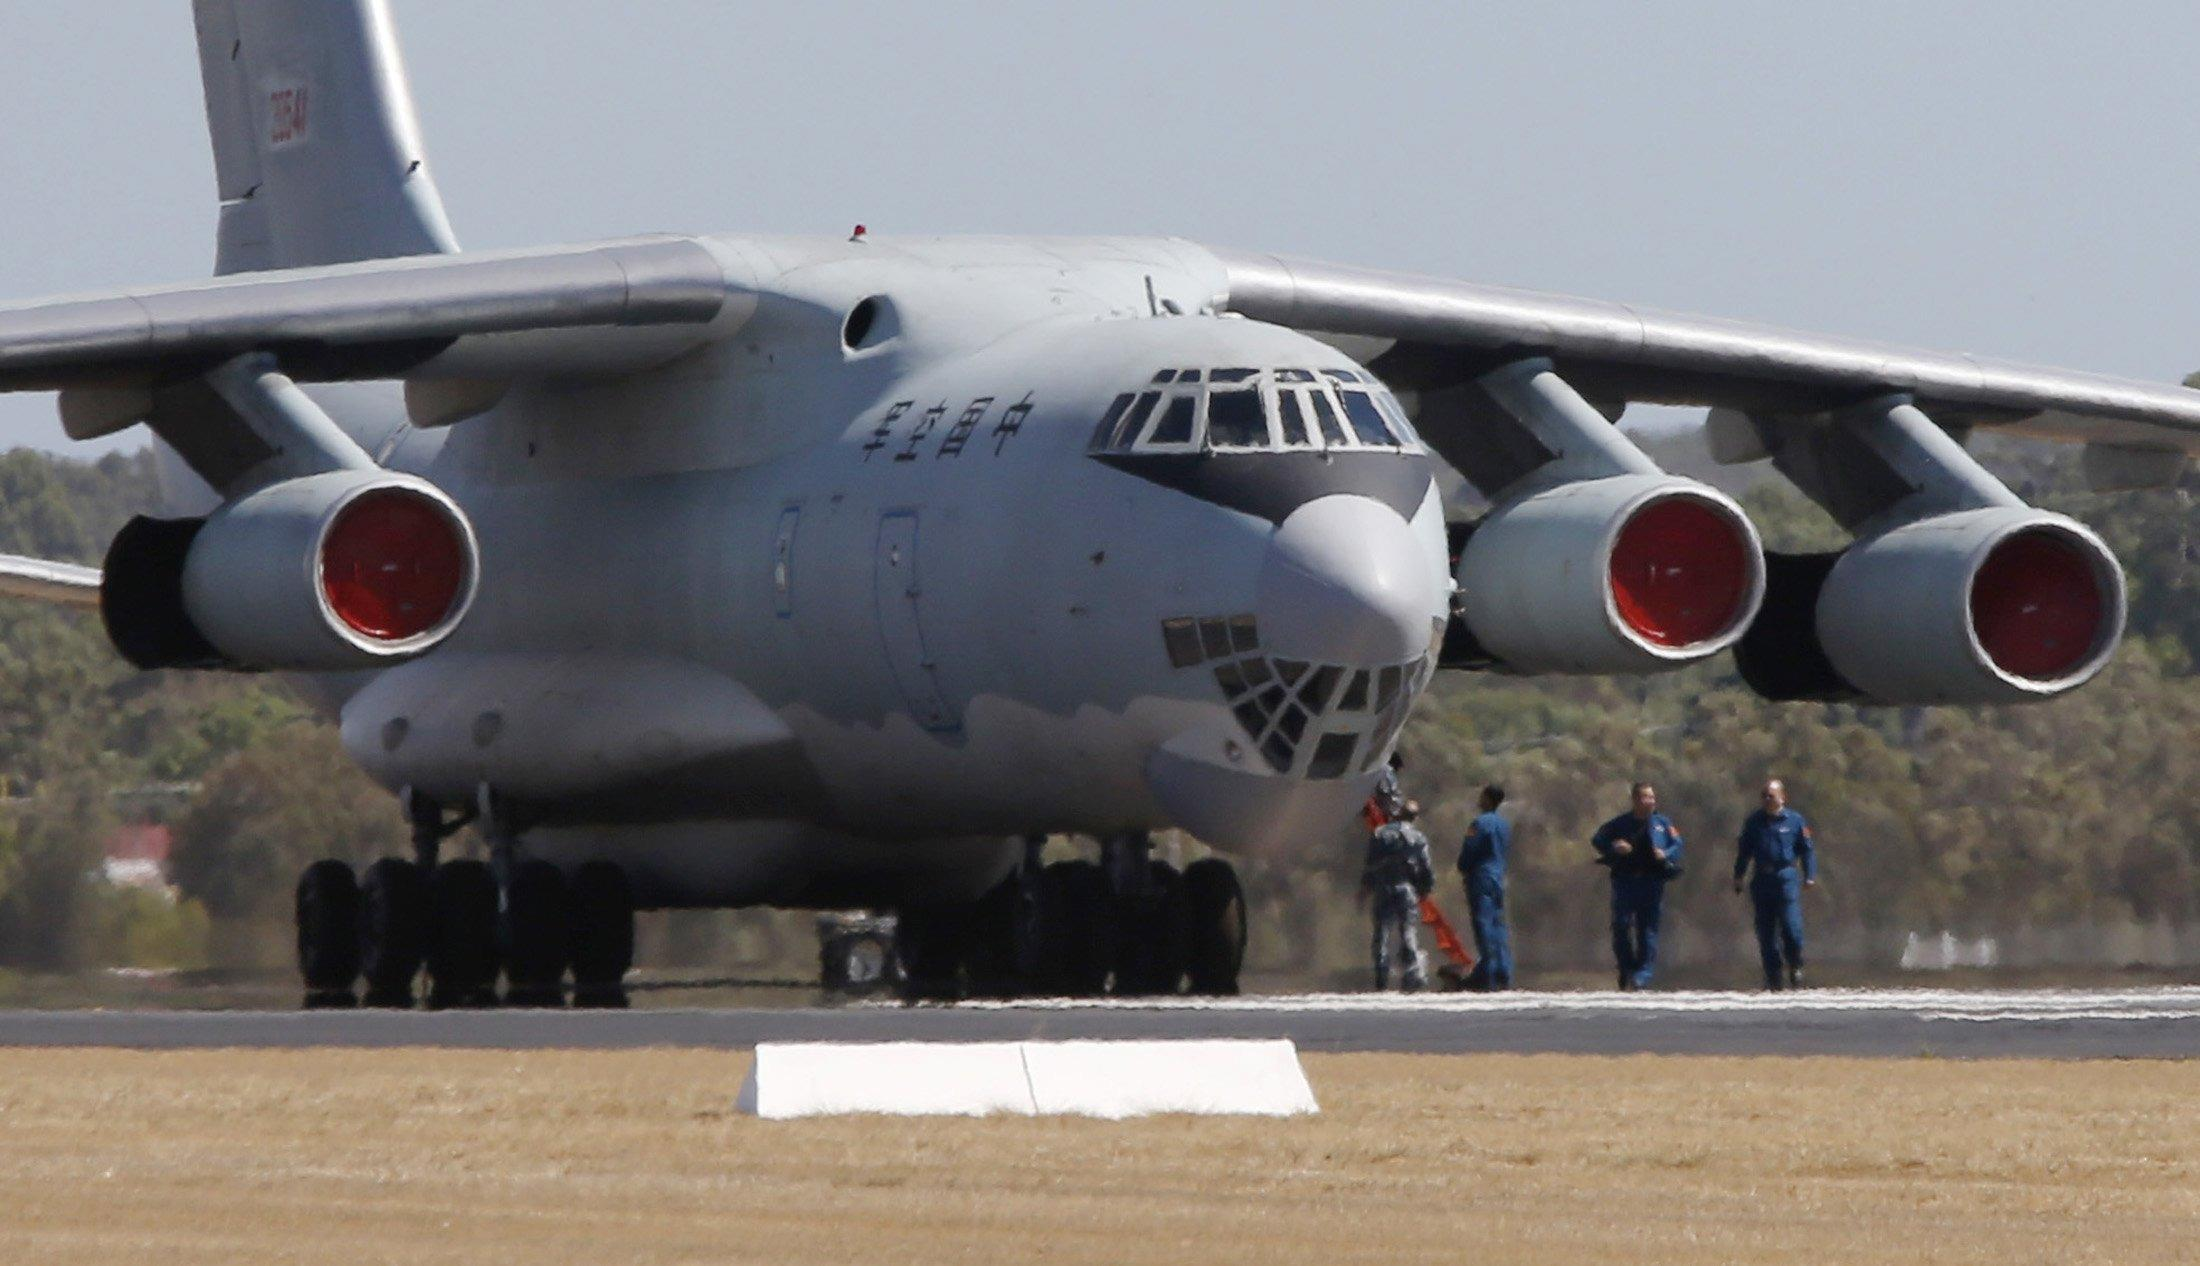 Image: Chinese Air Force Ilyushin Il-76 aircraft